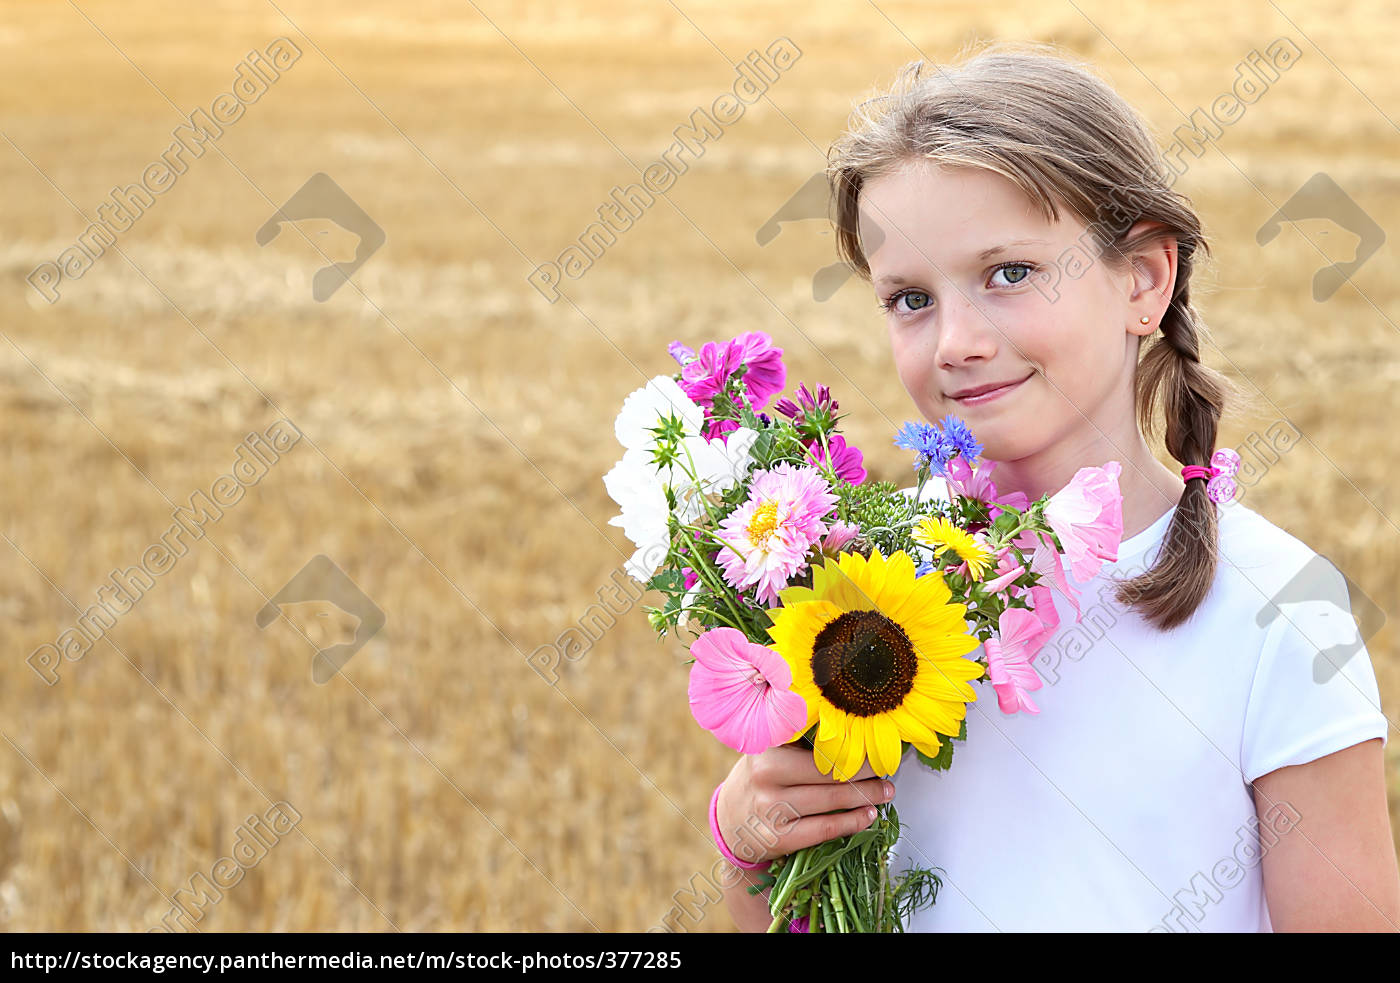 child, with, flowers, no.2 - 377285